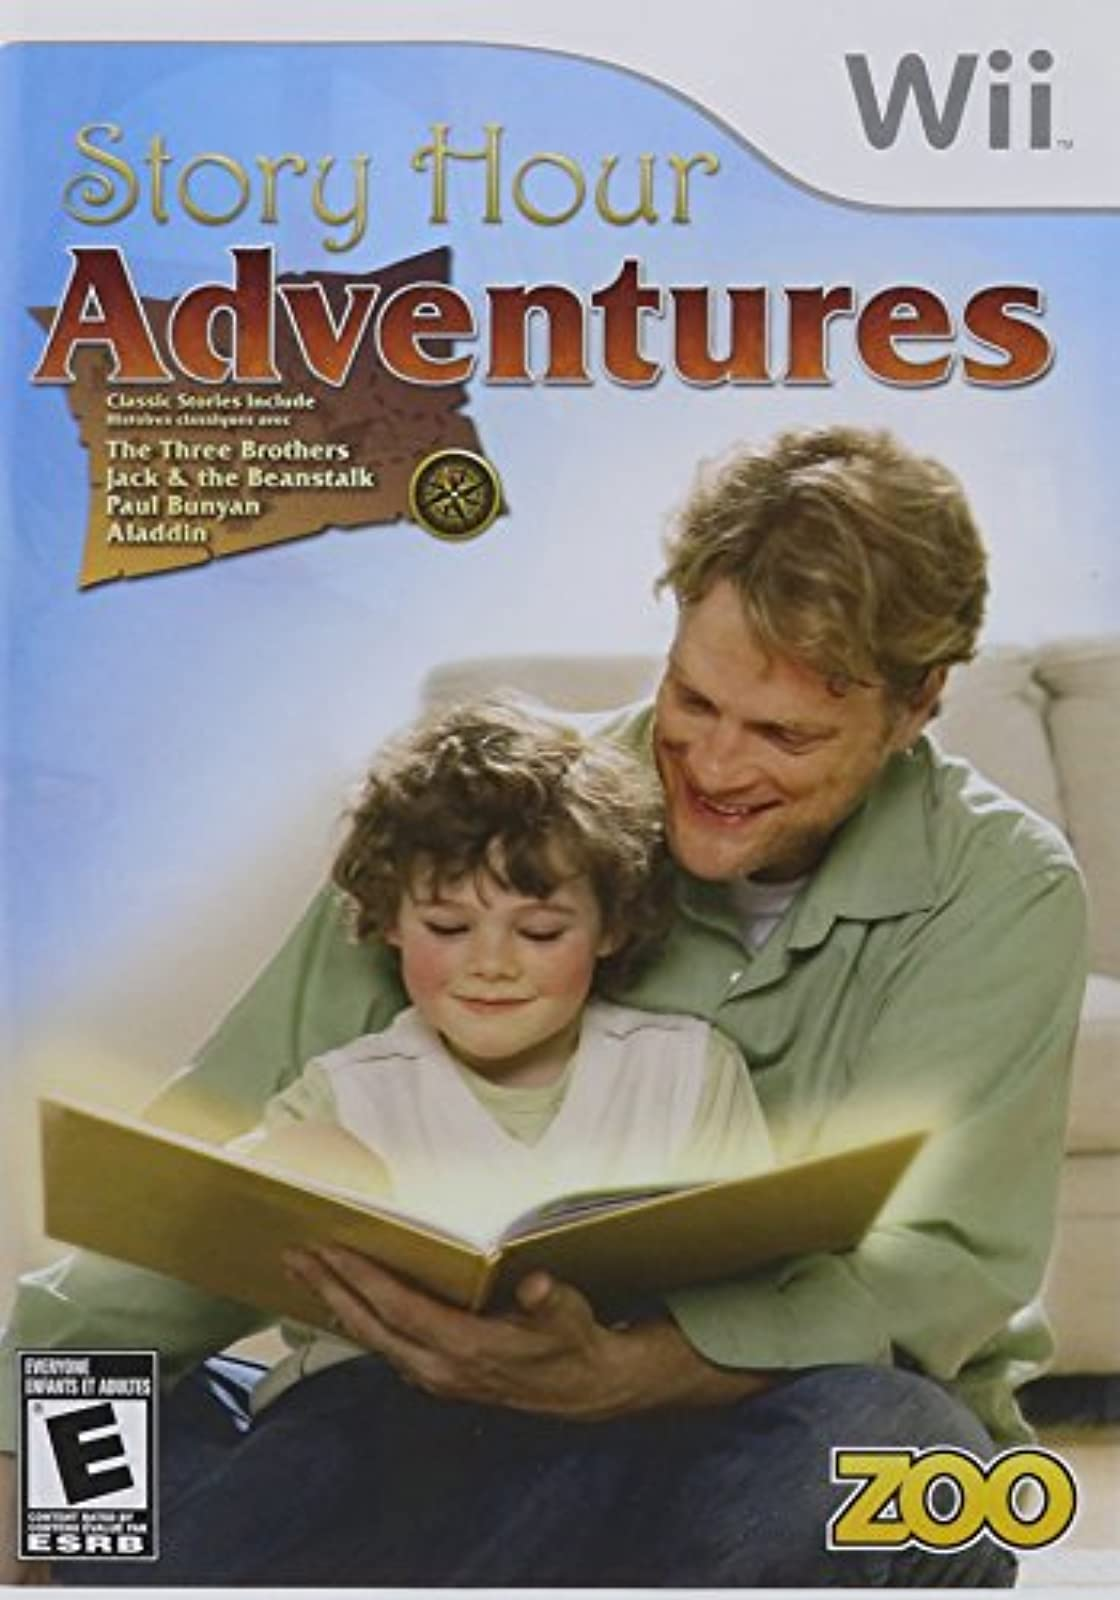 Story Hour: Adventures For Wii and Wii U